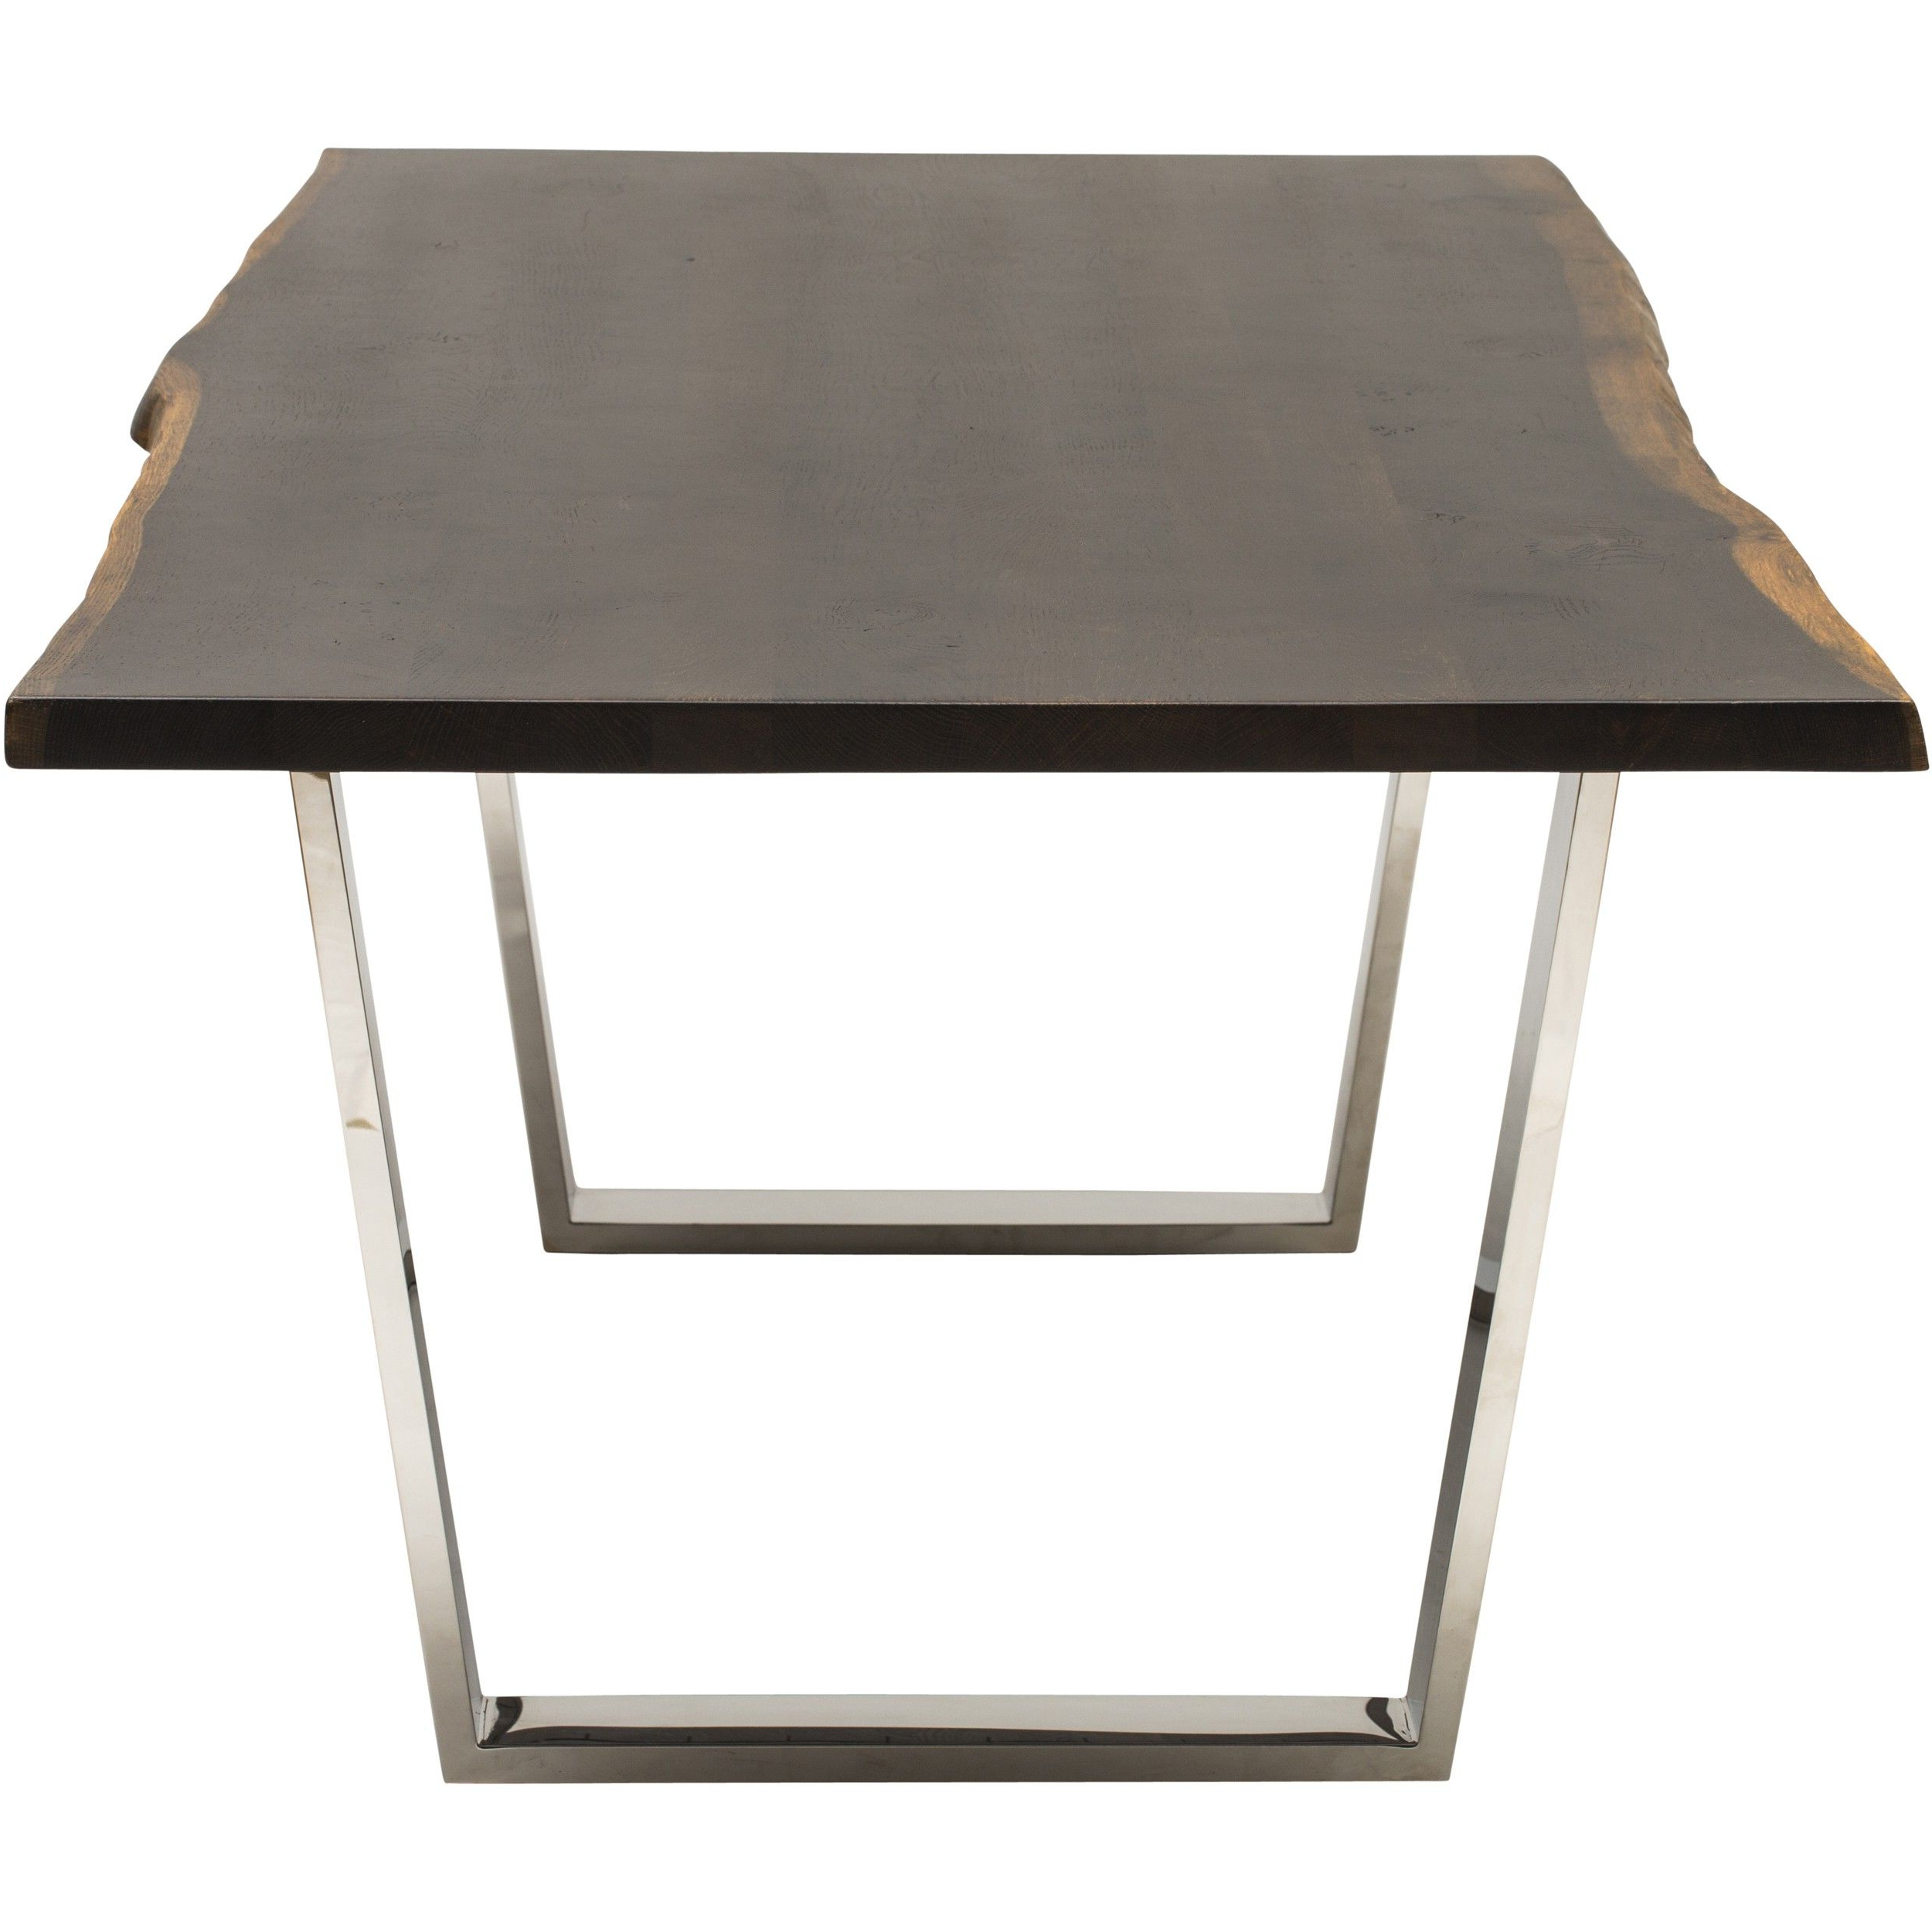 Versailles Dining Table, Seared Oak/polished Stainless Base Throughout Newest Dining Tables In Seared Oak (View 22 of 25)